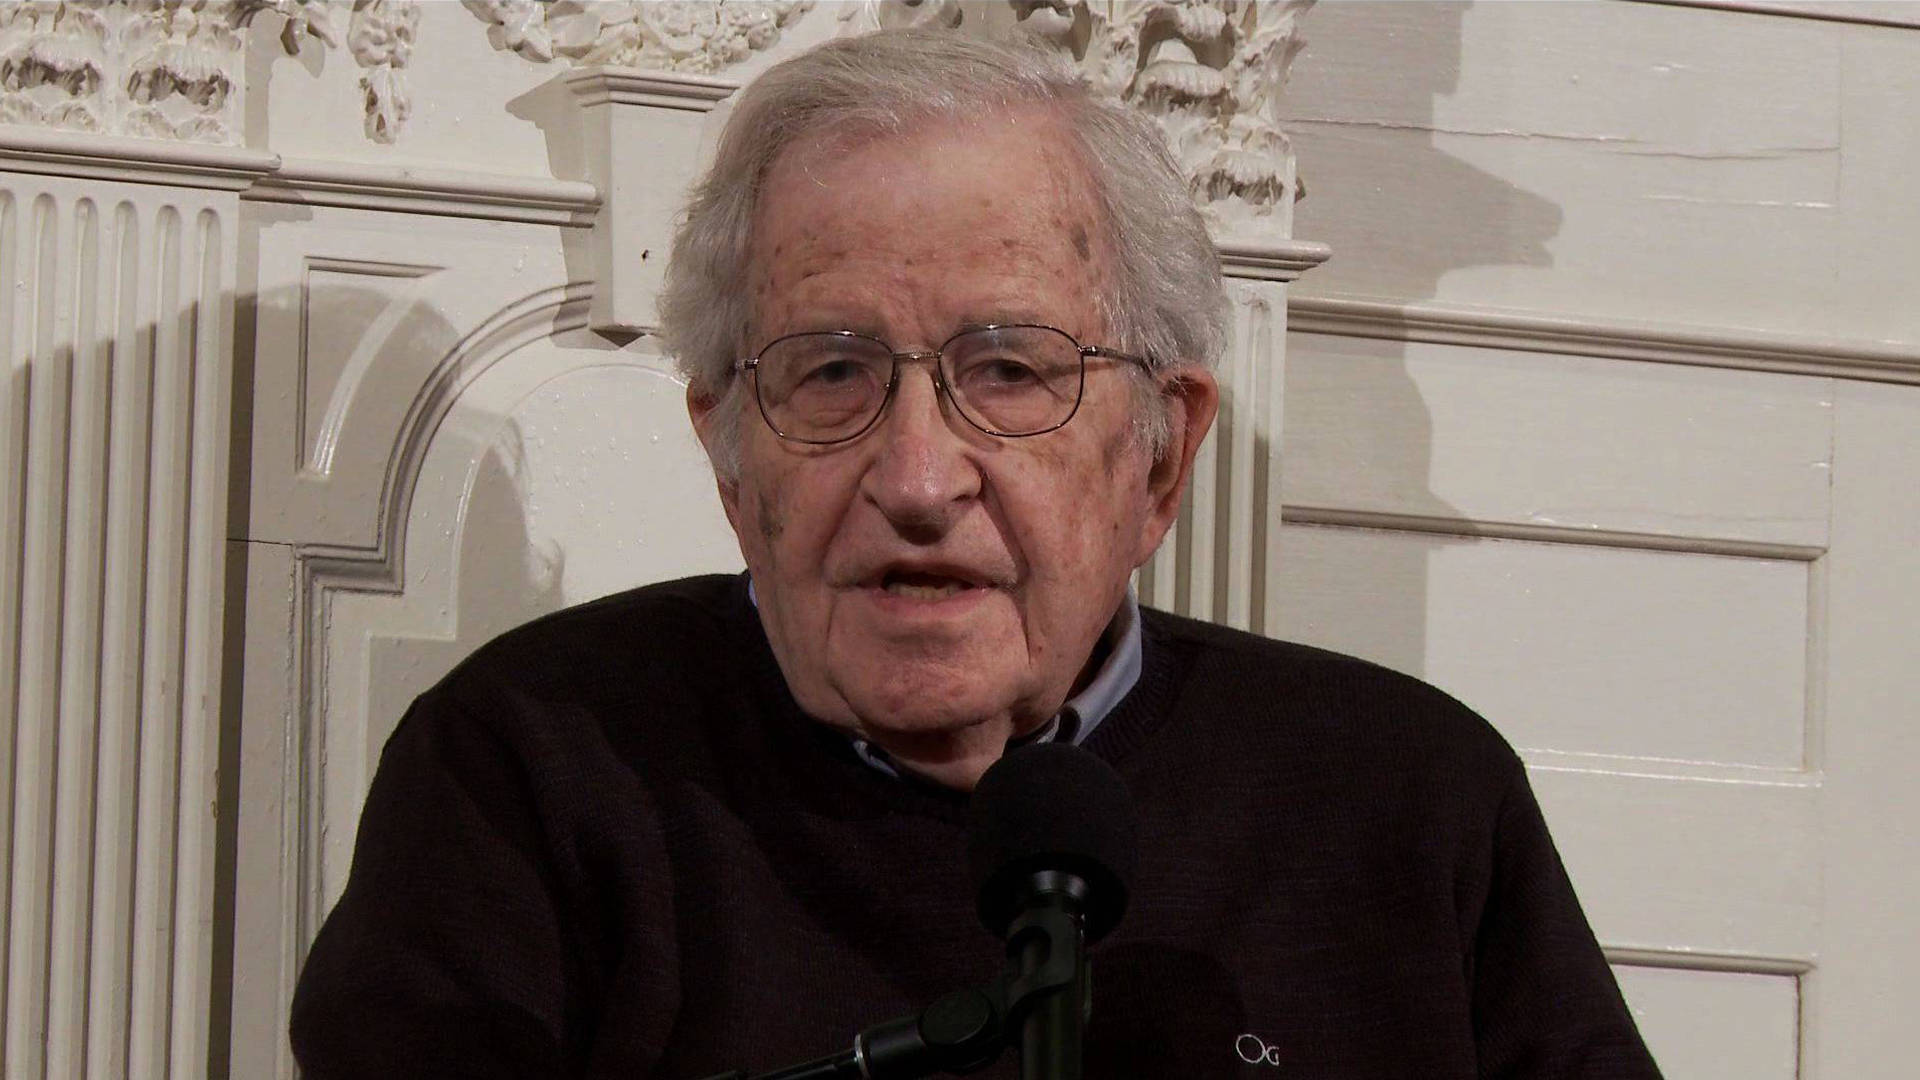 Noam Chomsky in Conversation with Amy Goodman on Trump, Nukes, North Korea, Climate Change & Syria